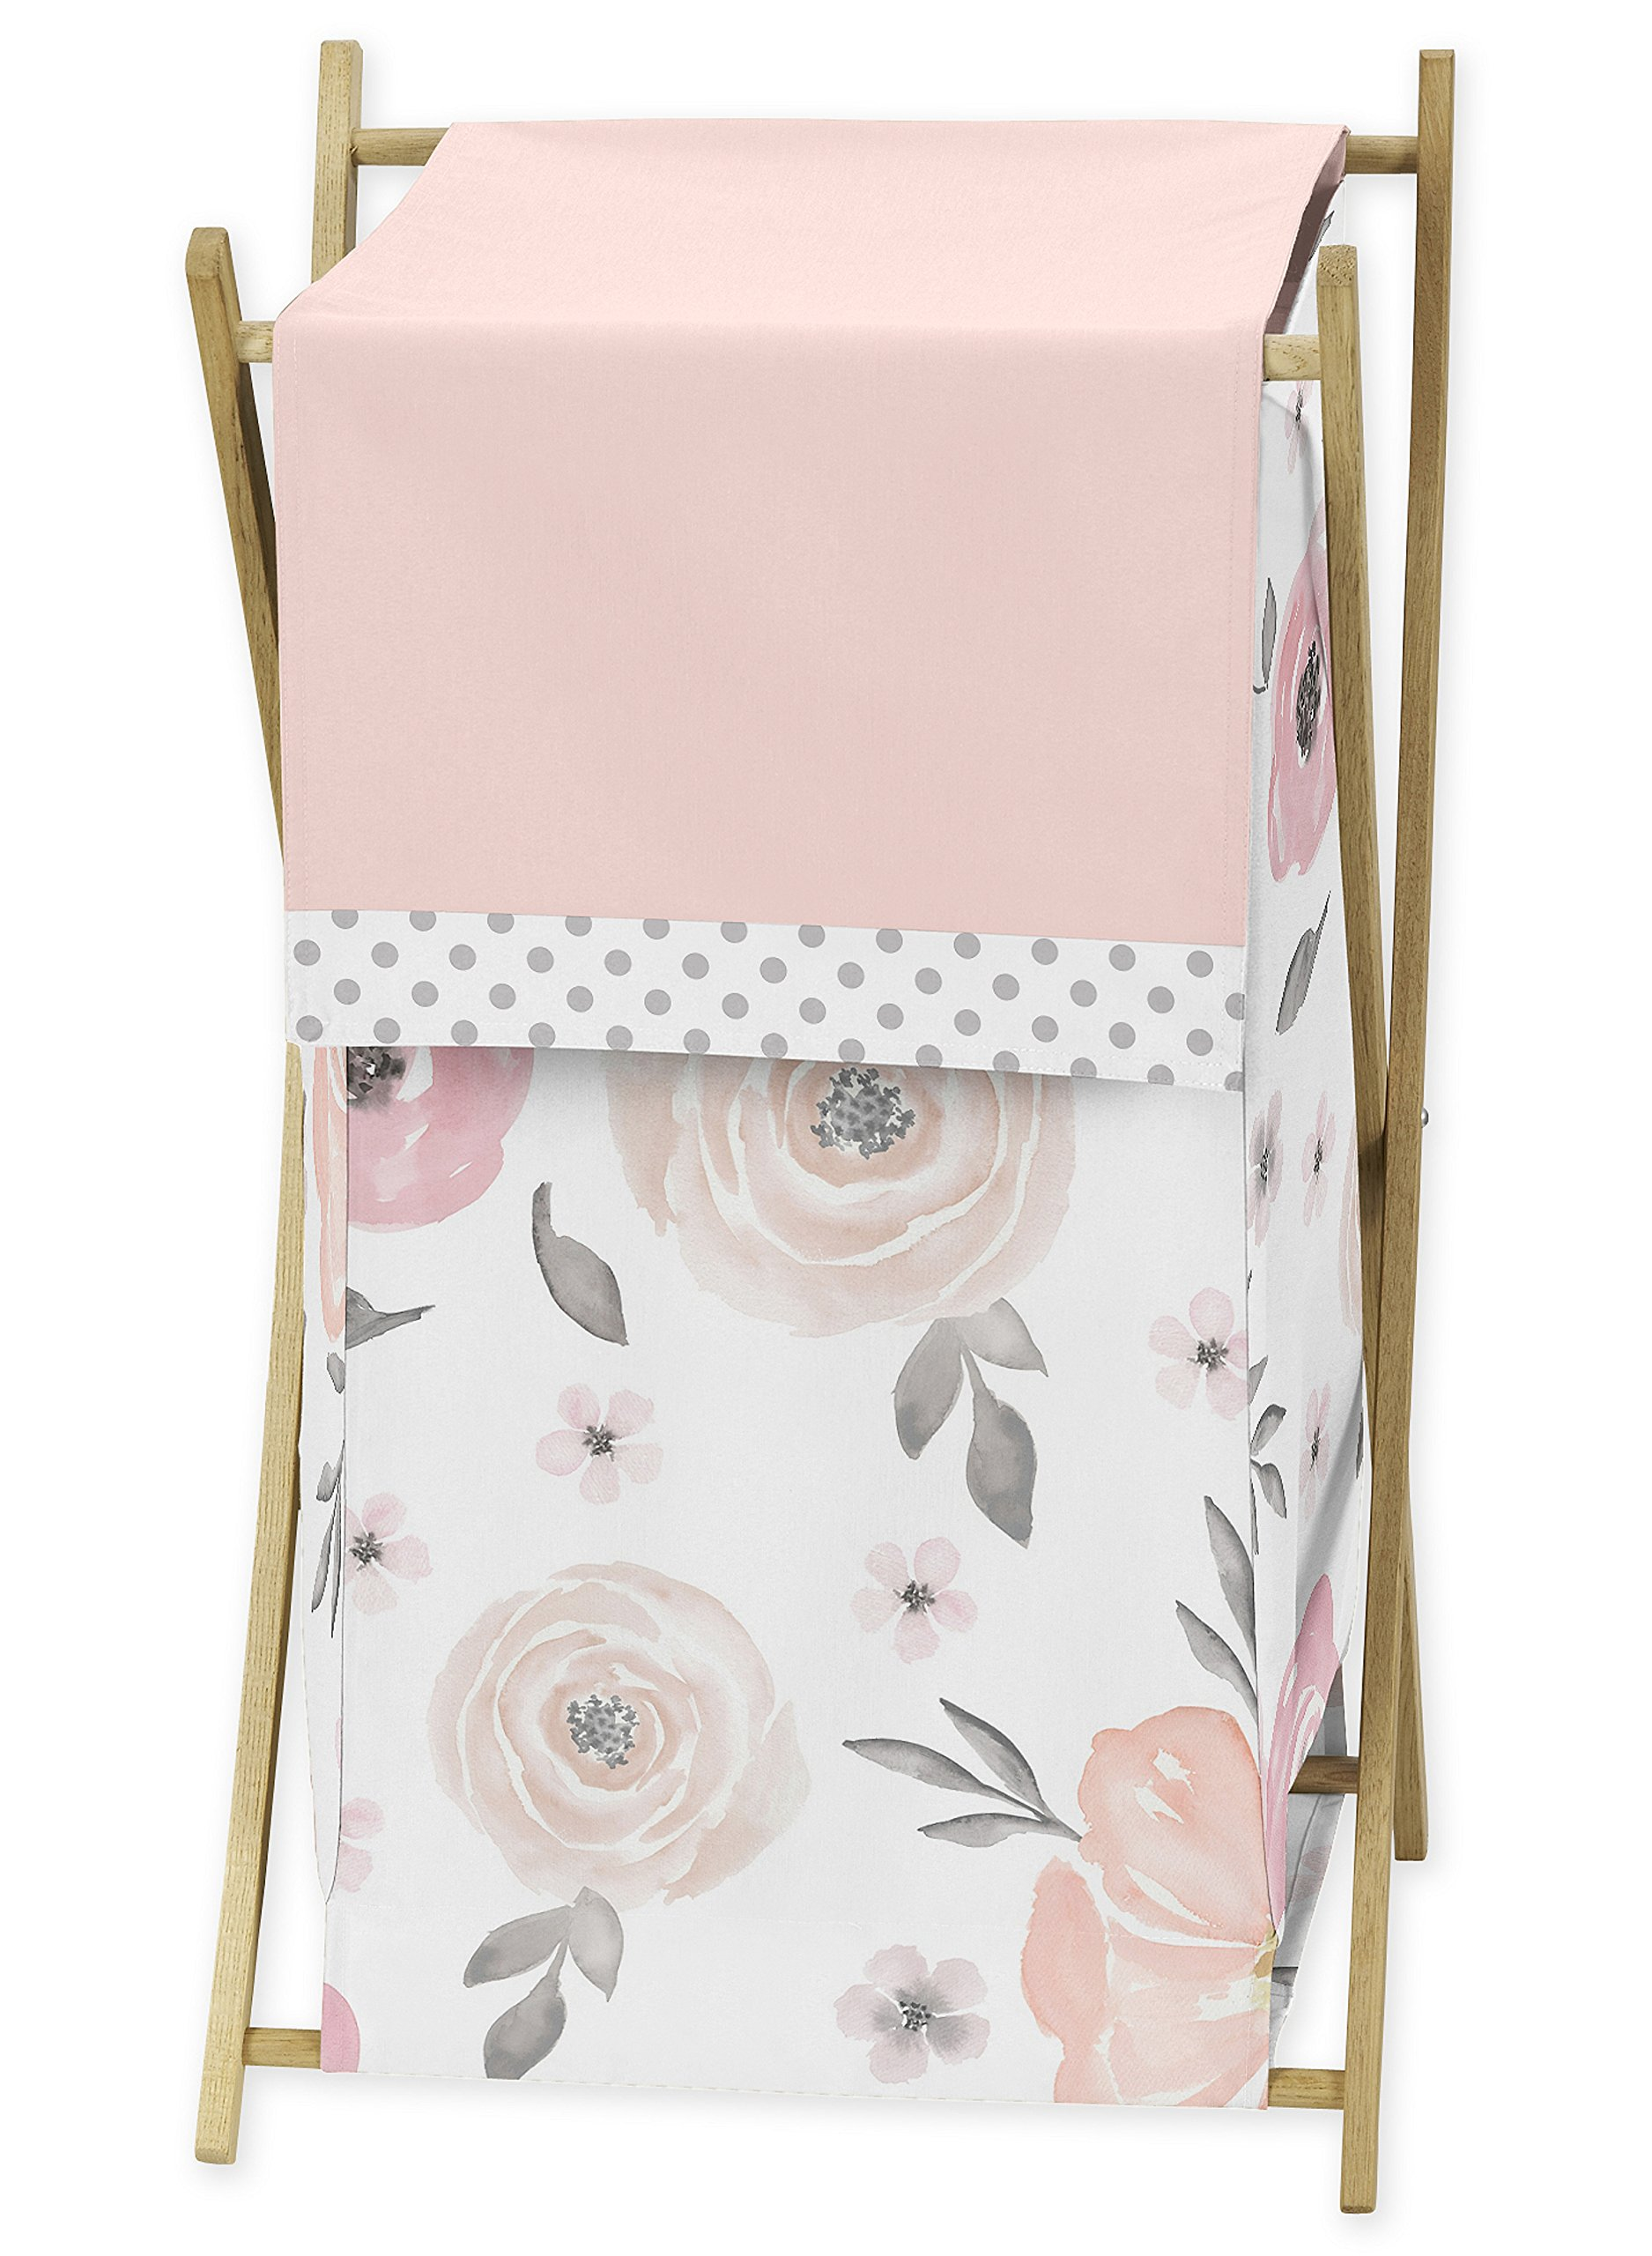 Sweet Jojo Designs Blush Pink, Grey and White Baby Kid Clothes Laundry Hamper for Watercolor Floral Collection by Sweet Jojo Designs